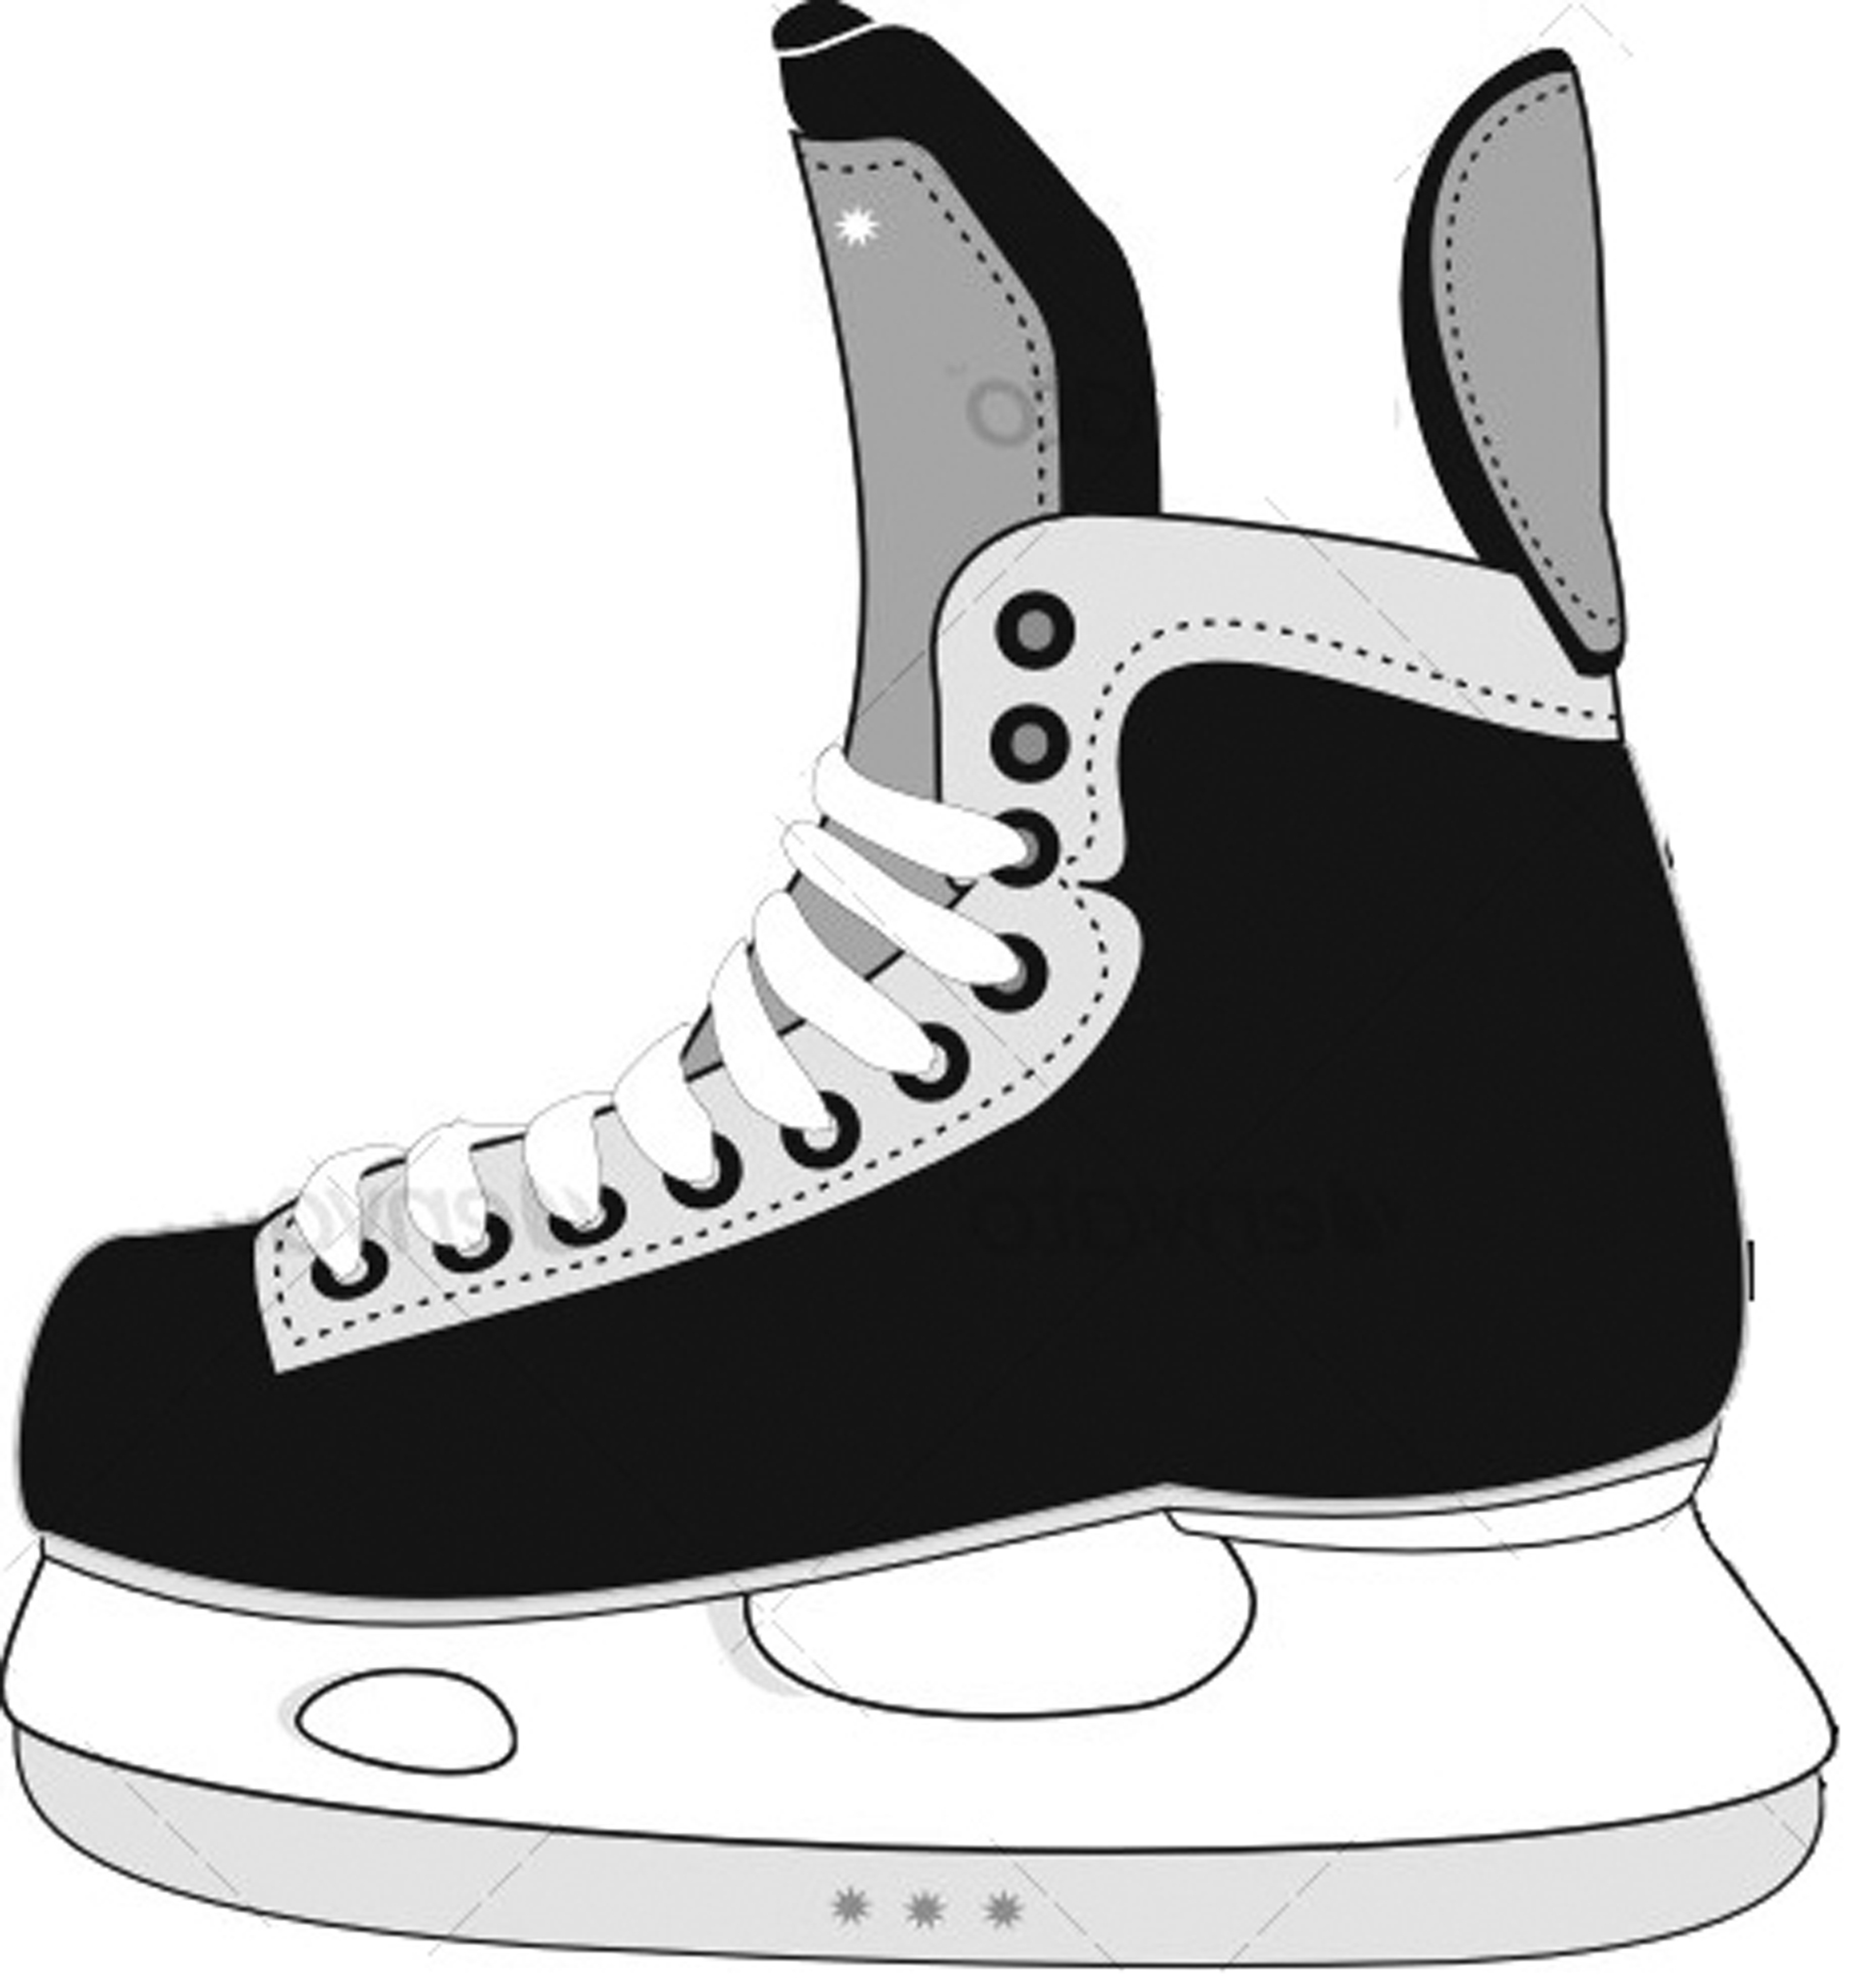 Skate clipart. Hockey